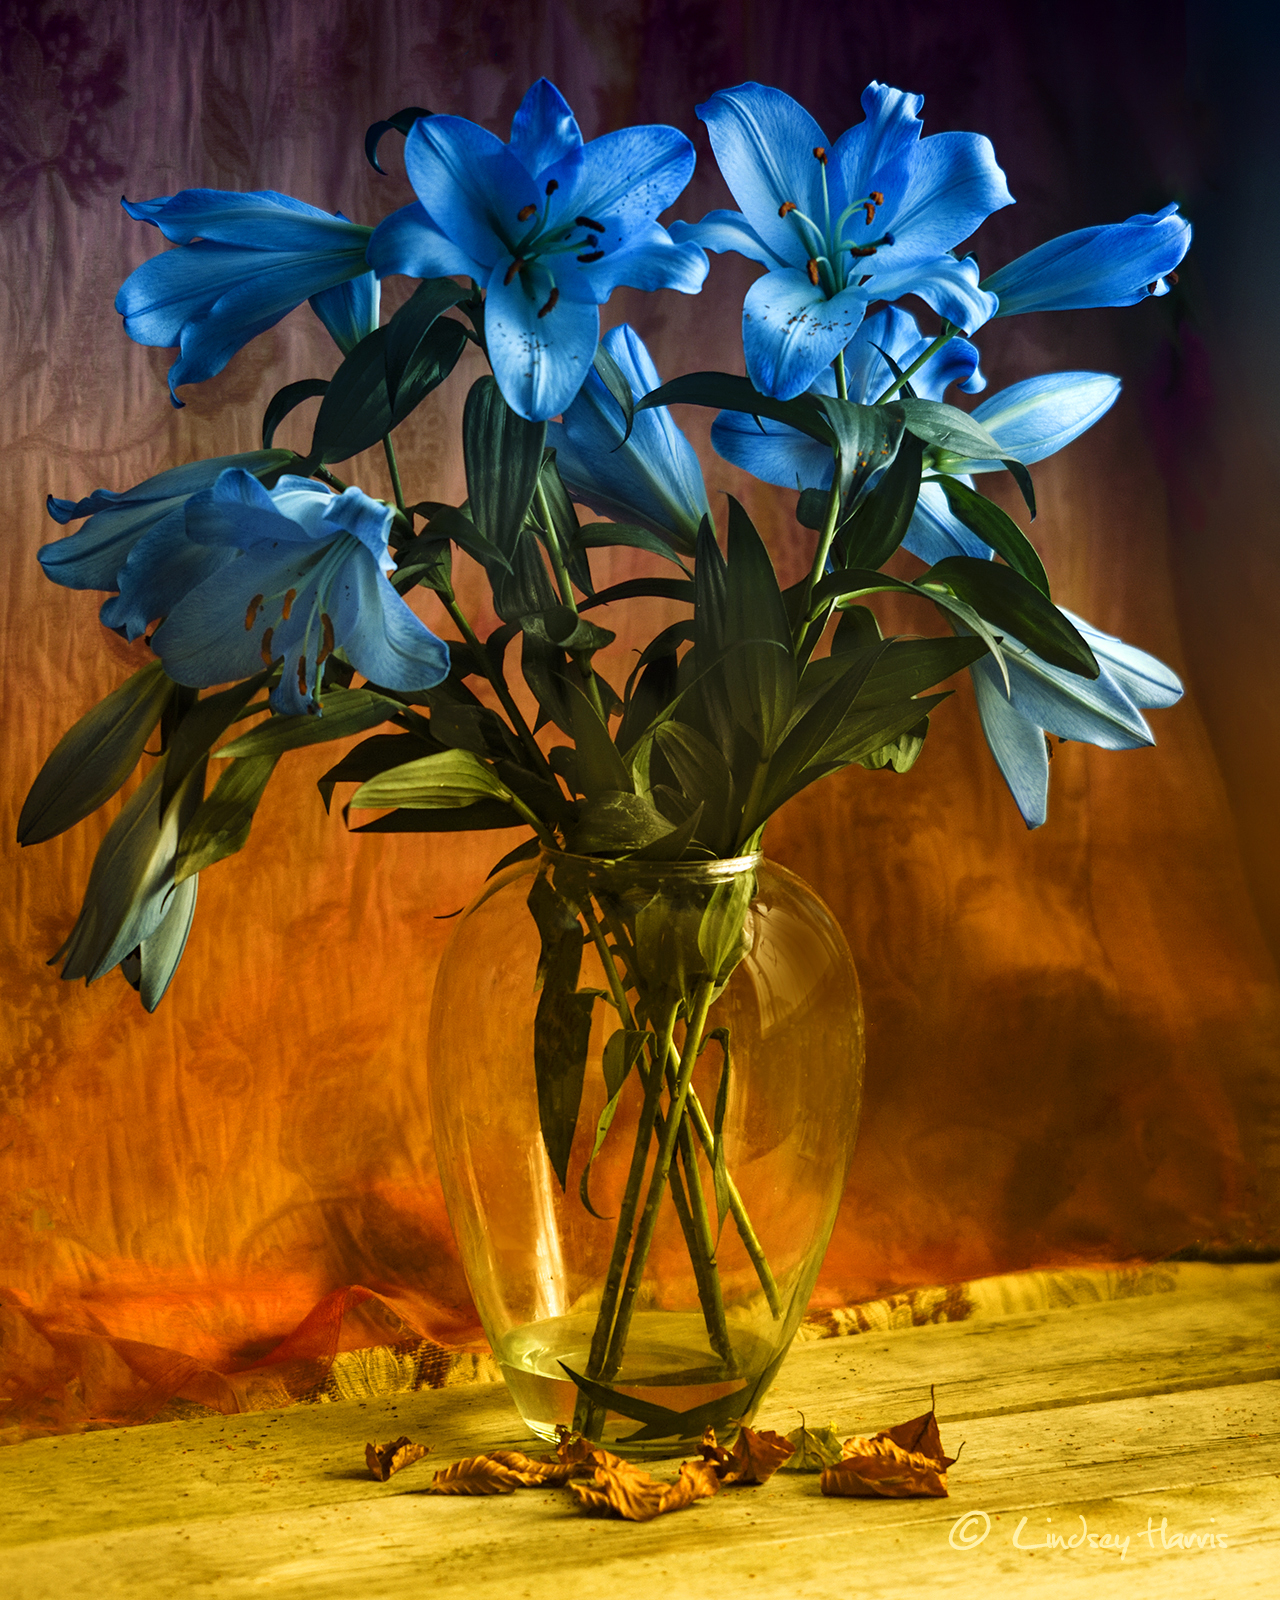 Dufy style photograph of vase of flowers.